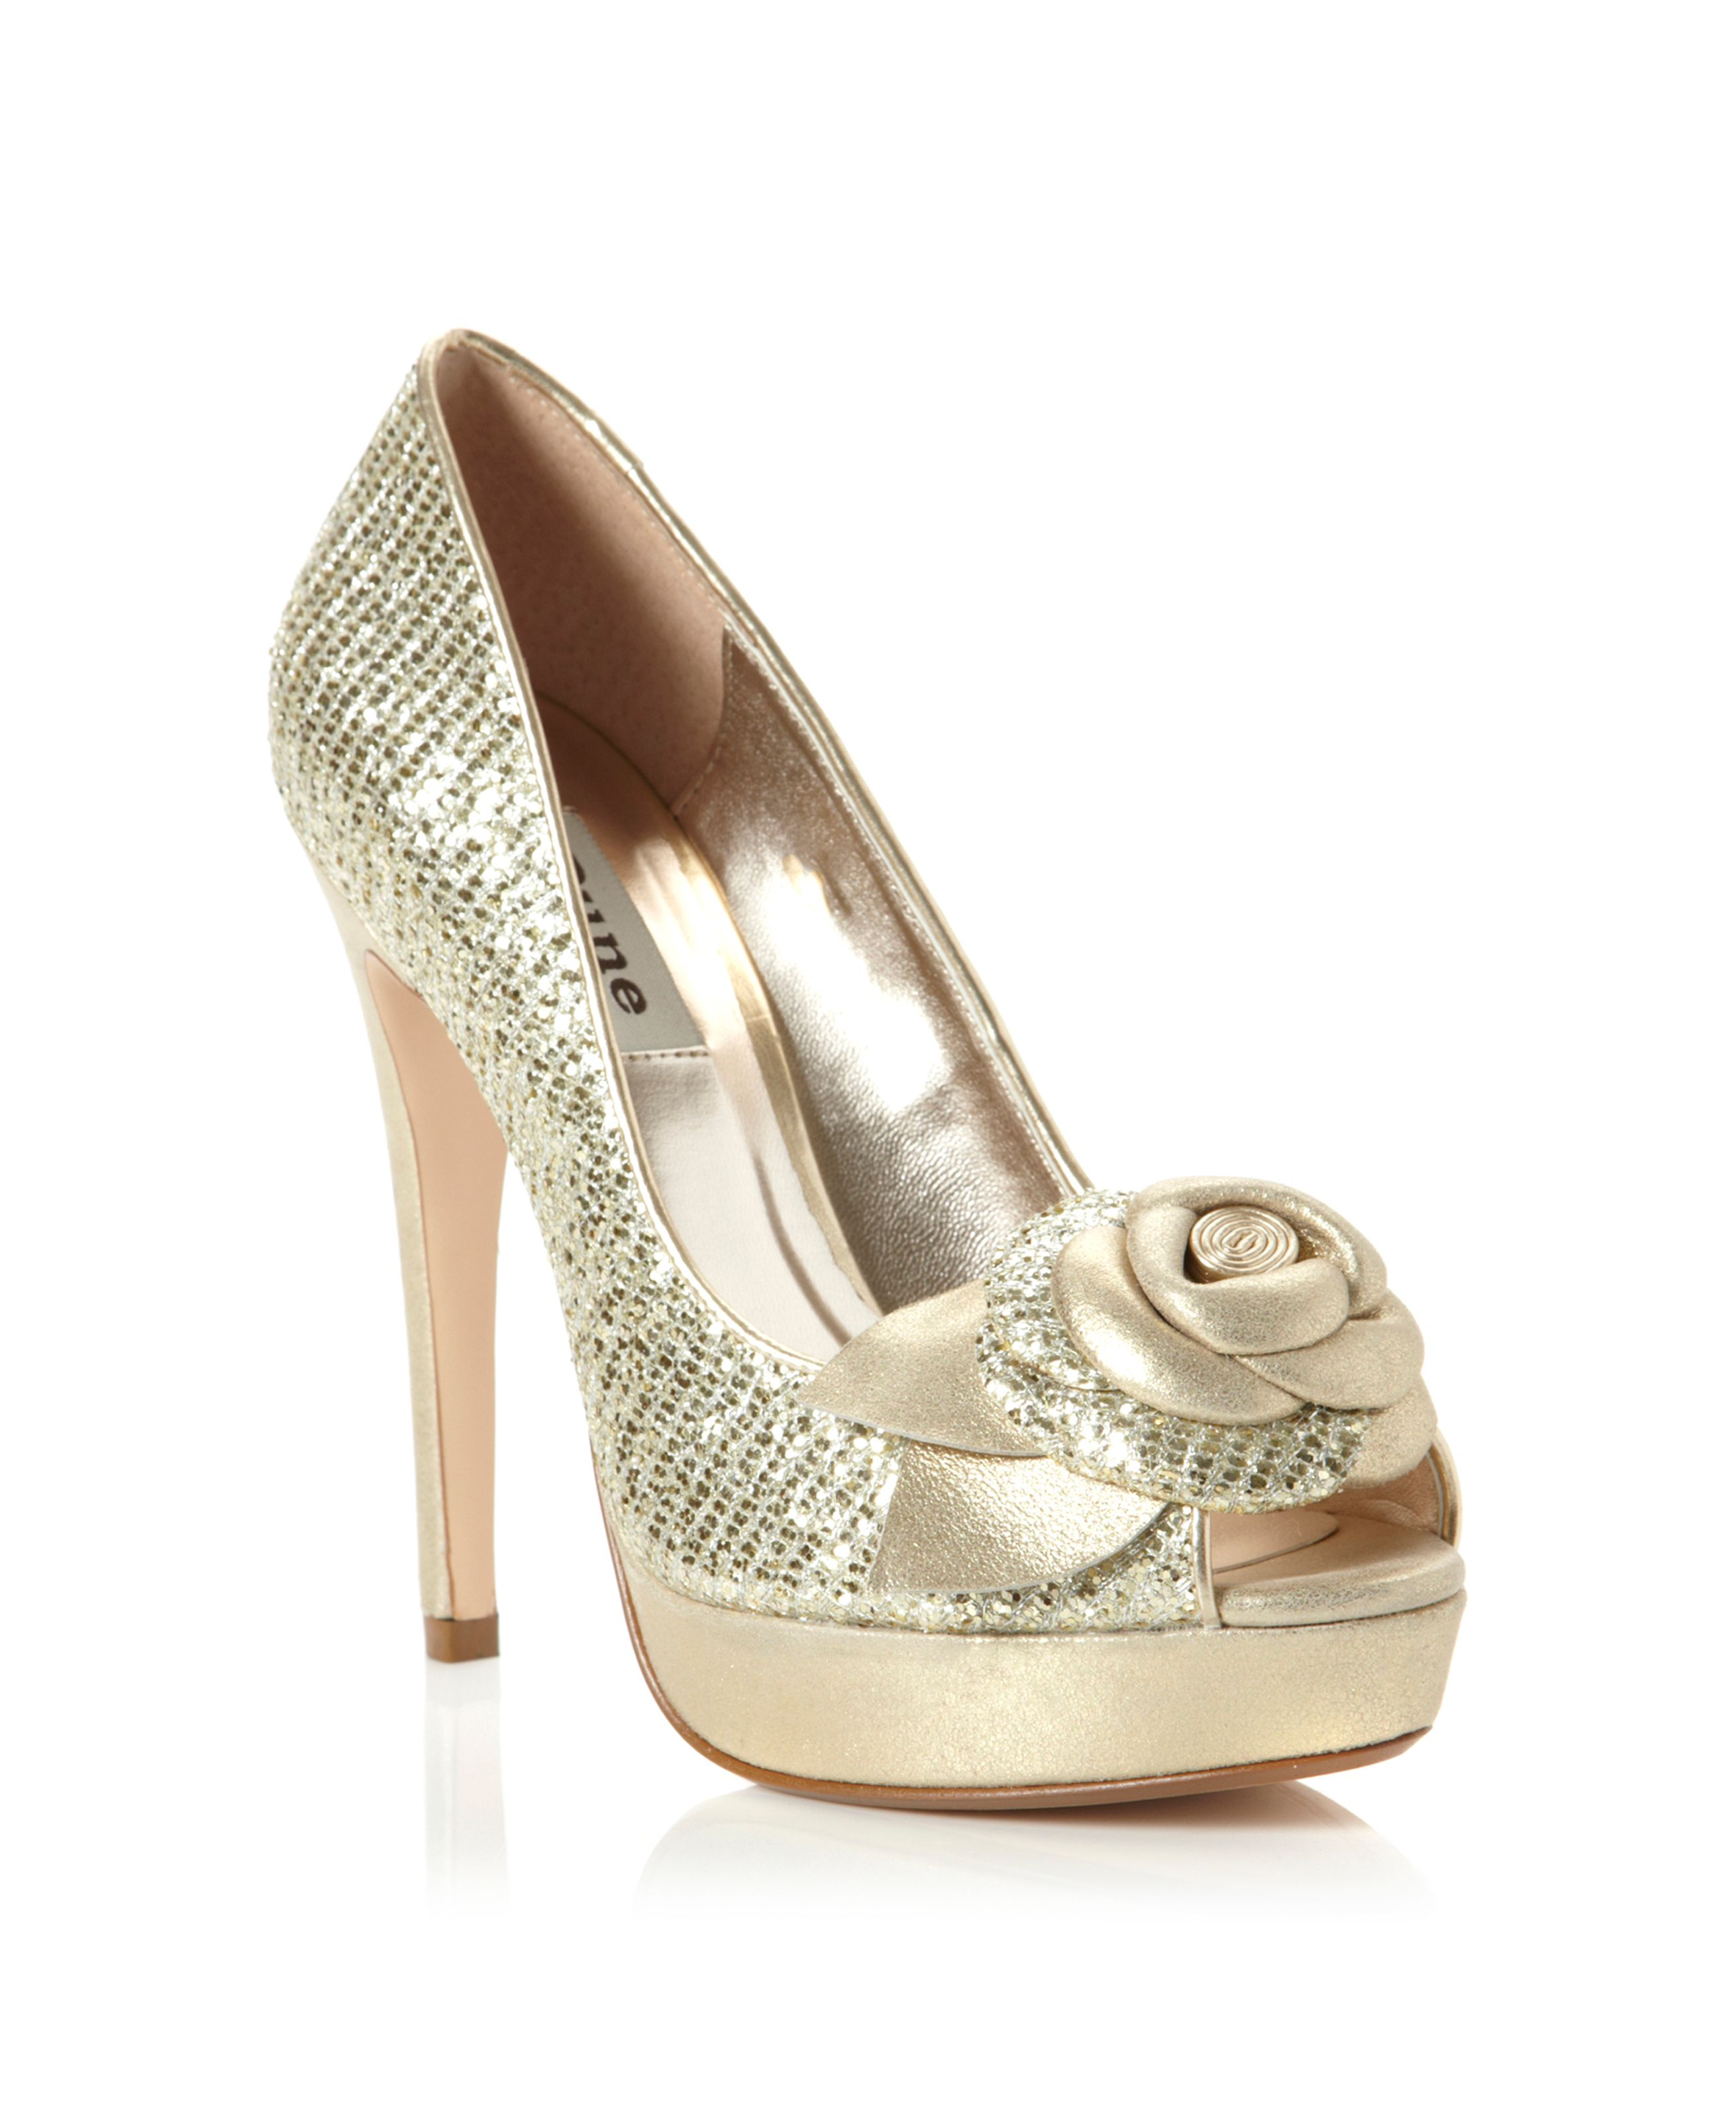 Discos flower trim peep toe court shoes